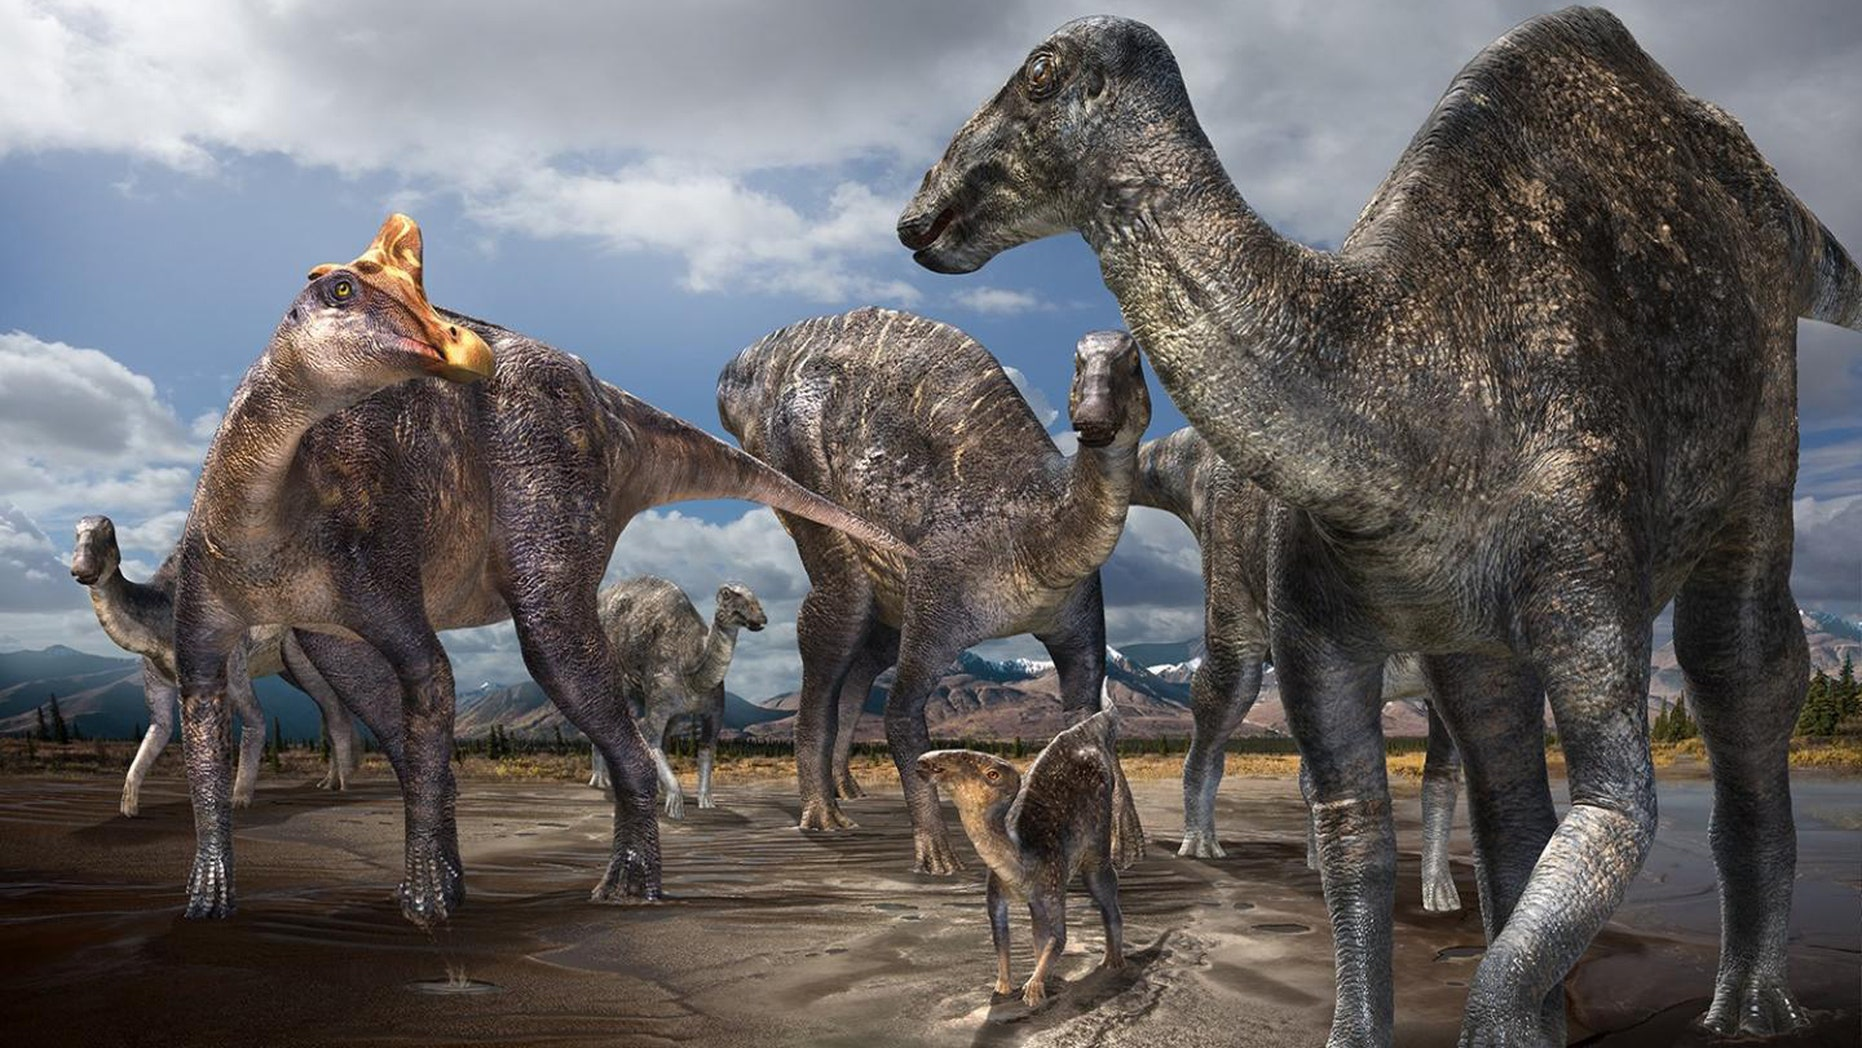 File photo: Paleontologists from Hokkaido University in Japan, in team-work with paleontologists from a Perot Museum of Nature and Science in Dallas, Texas, have detected a initial reliable occurrence of a lambeosaurine (crested 'duck-billed' dinosaur) from a Arctic. (Credit: Masato Hattori)